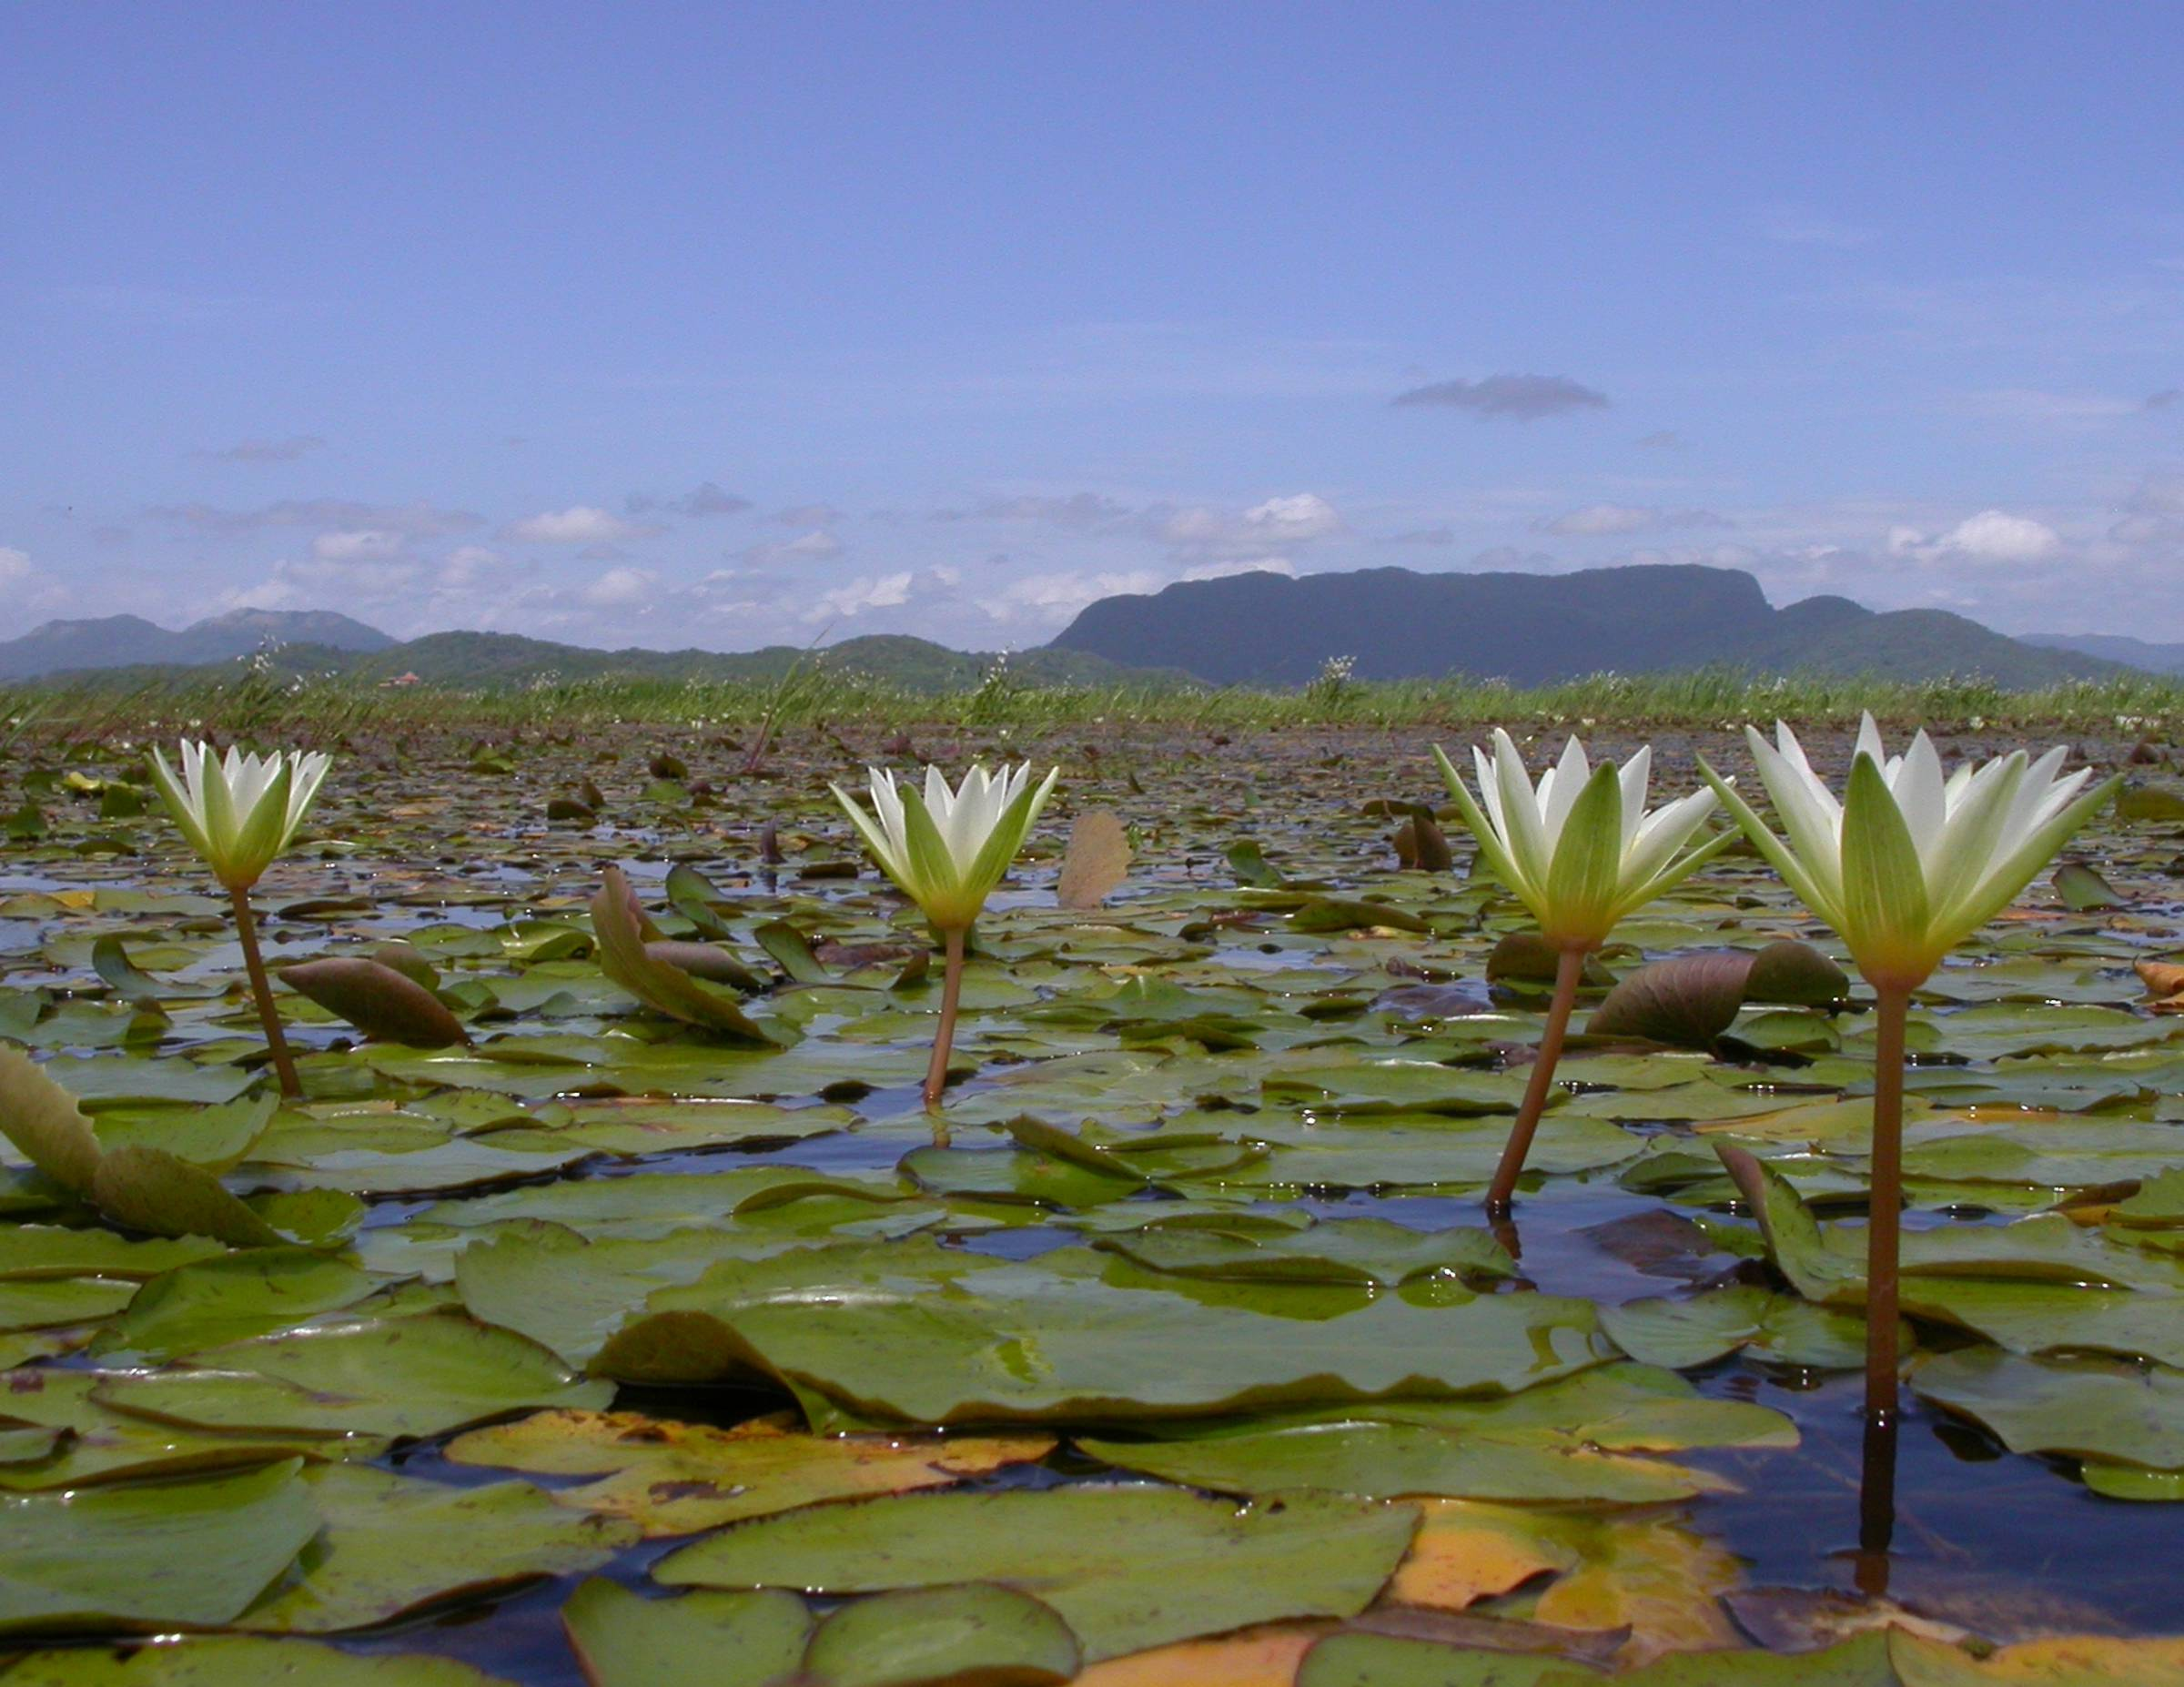 Nymphaeaceae Nymphaea